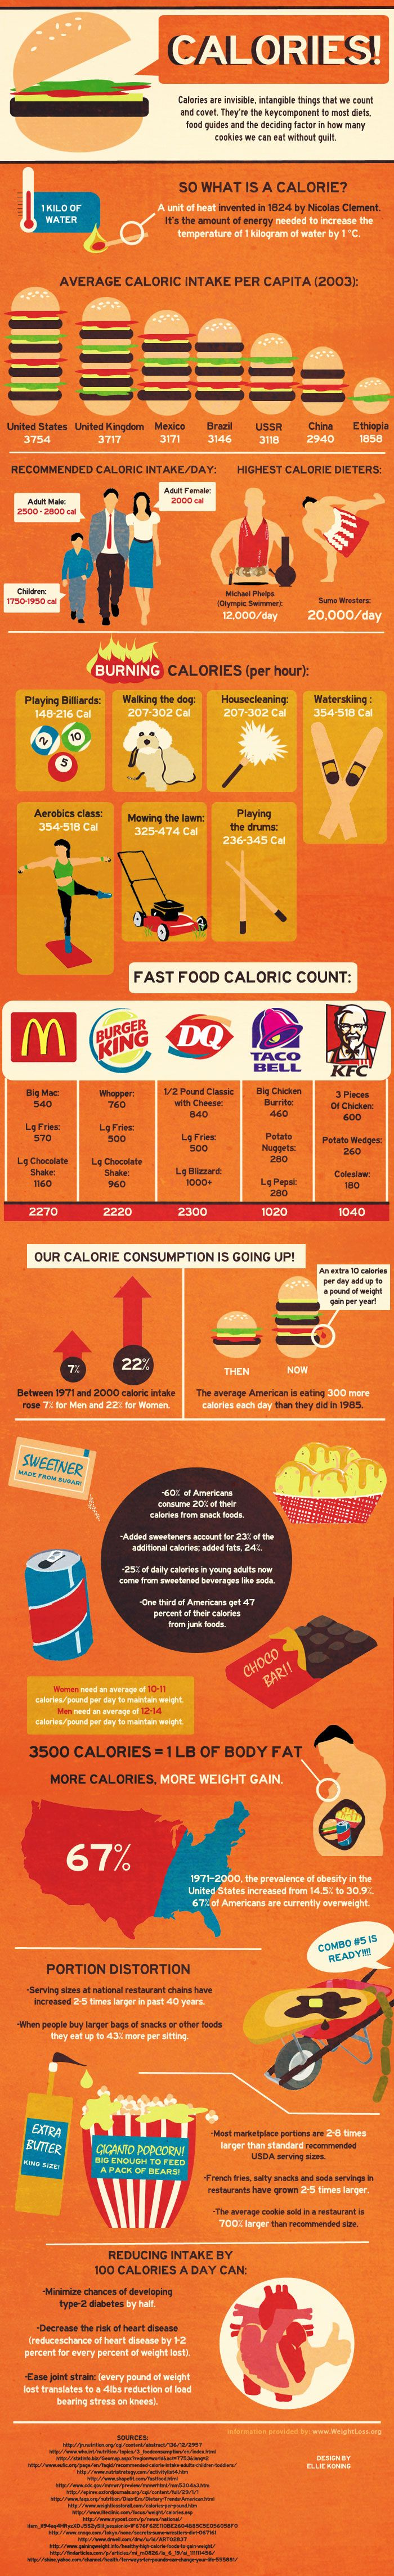 All about calories.